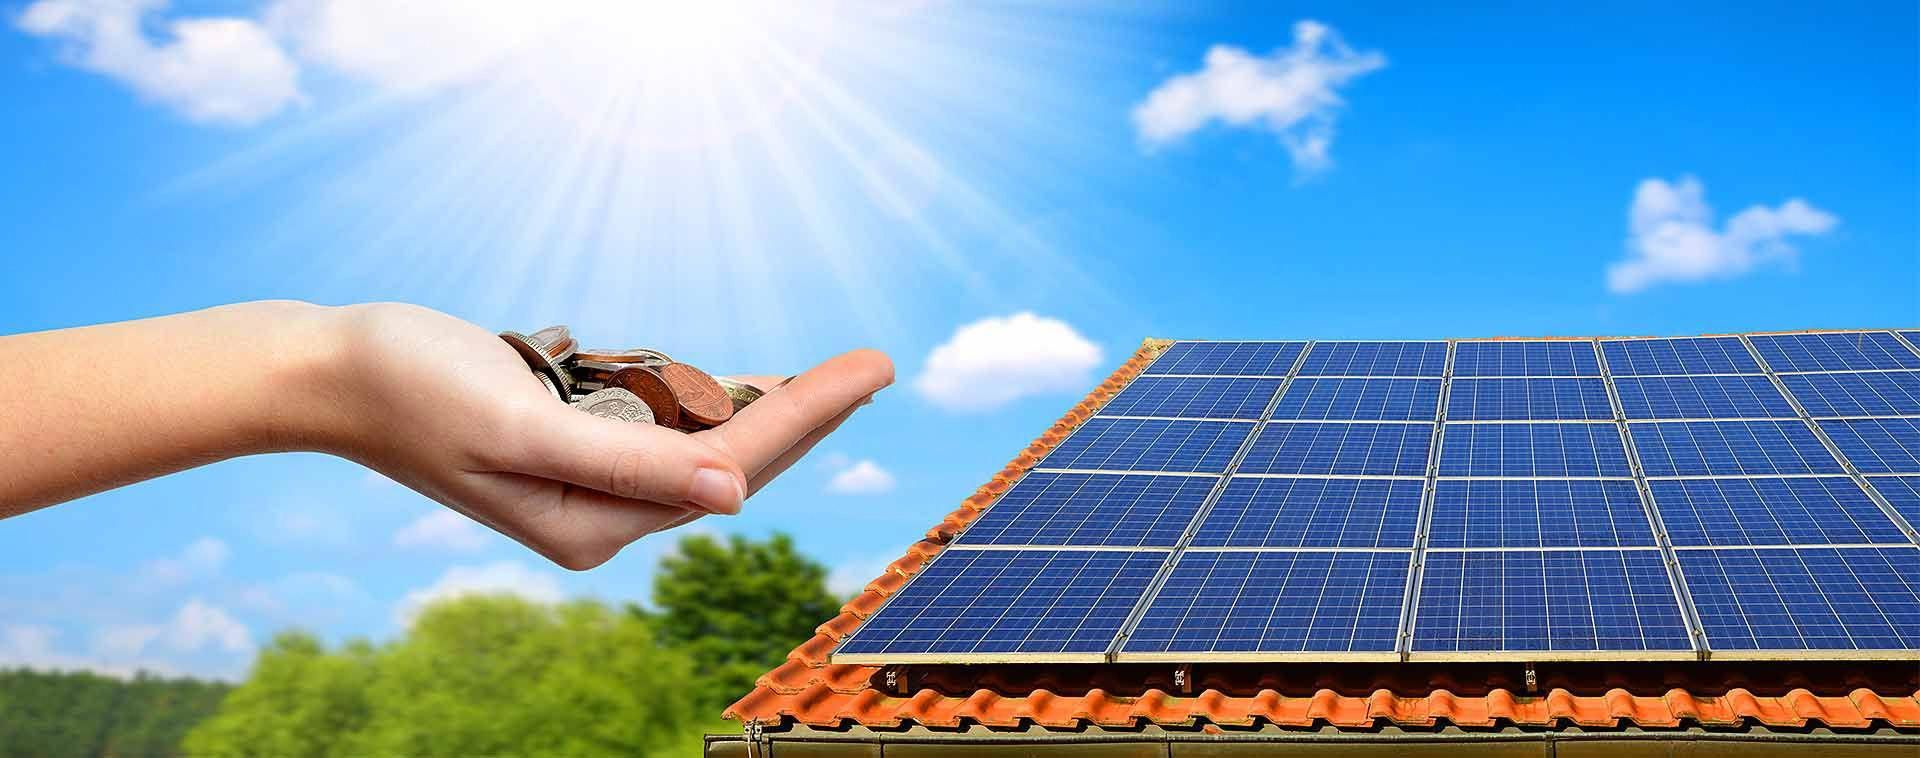 Solar Energy Systems Offer A Cheaper Cleaner And All Around Better Energy Solution A Solar Photovoltaic Pv Sy In 2020 Solar Energy System Solar Energy Solar Power